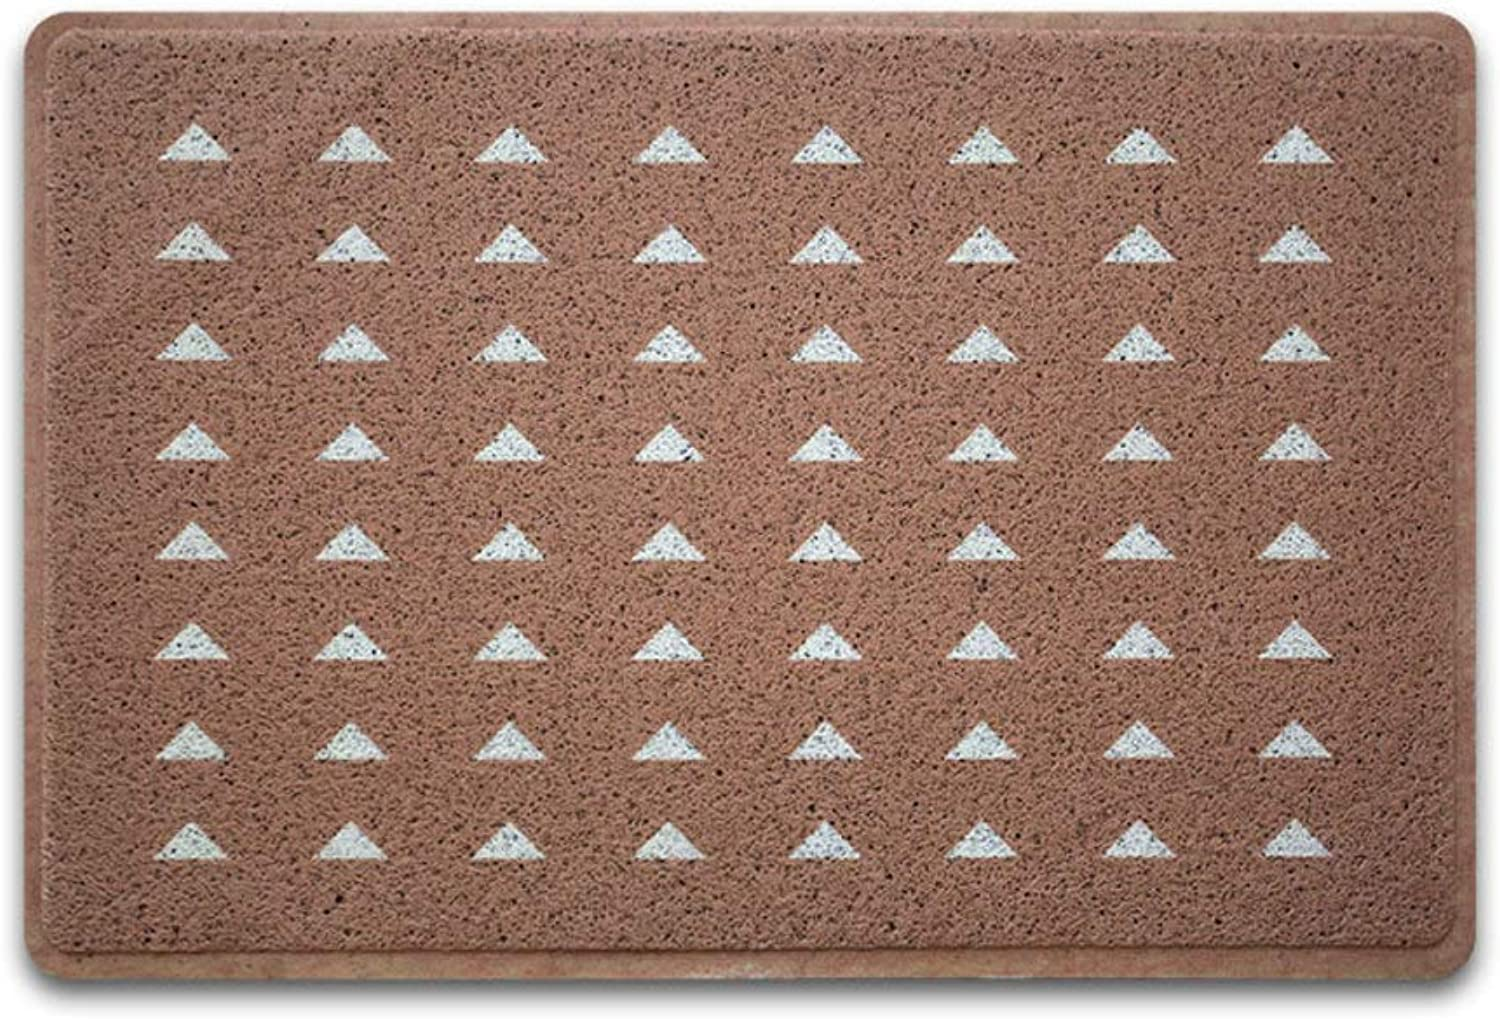 Carpet,Entrance Doormat Geometric Patterned Non Skid Backing Easy to Clean-BrownC 60x90cm(24x35inch)